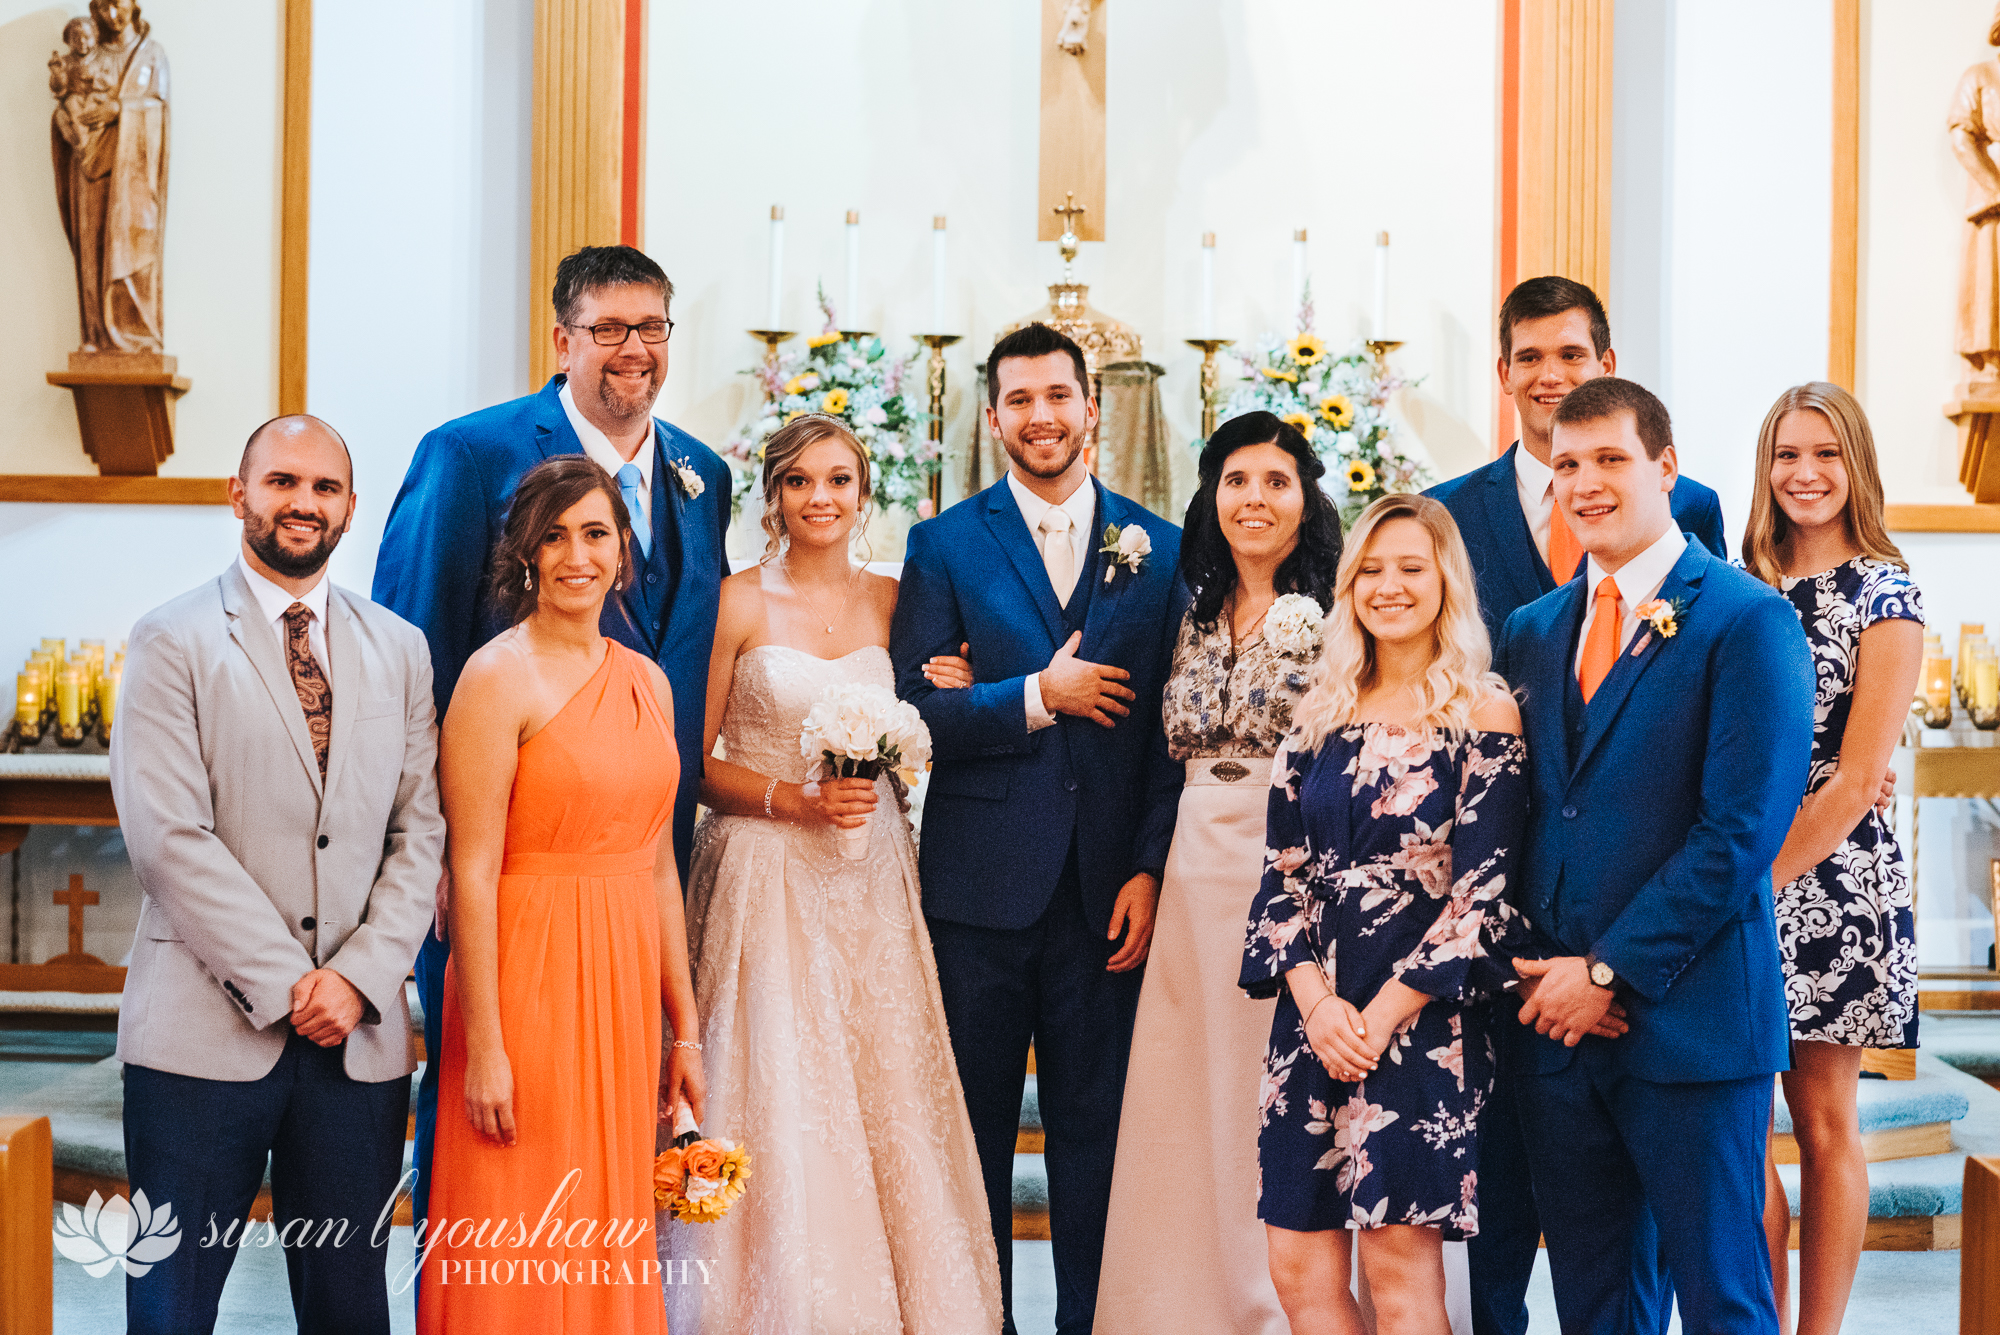 BLOG Kylie and corey Bennet 10-13-2018 SLY Photography LLC-66.jpg